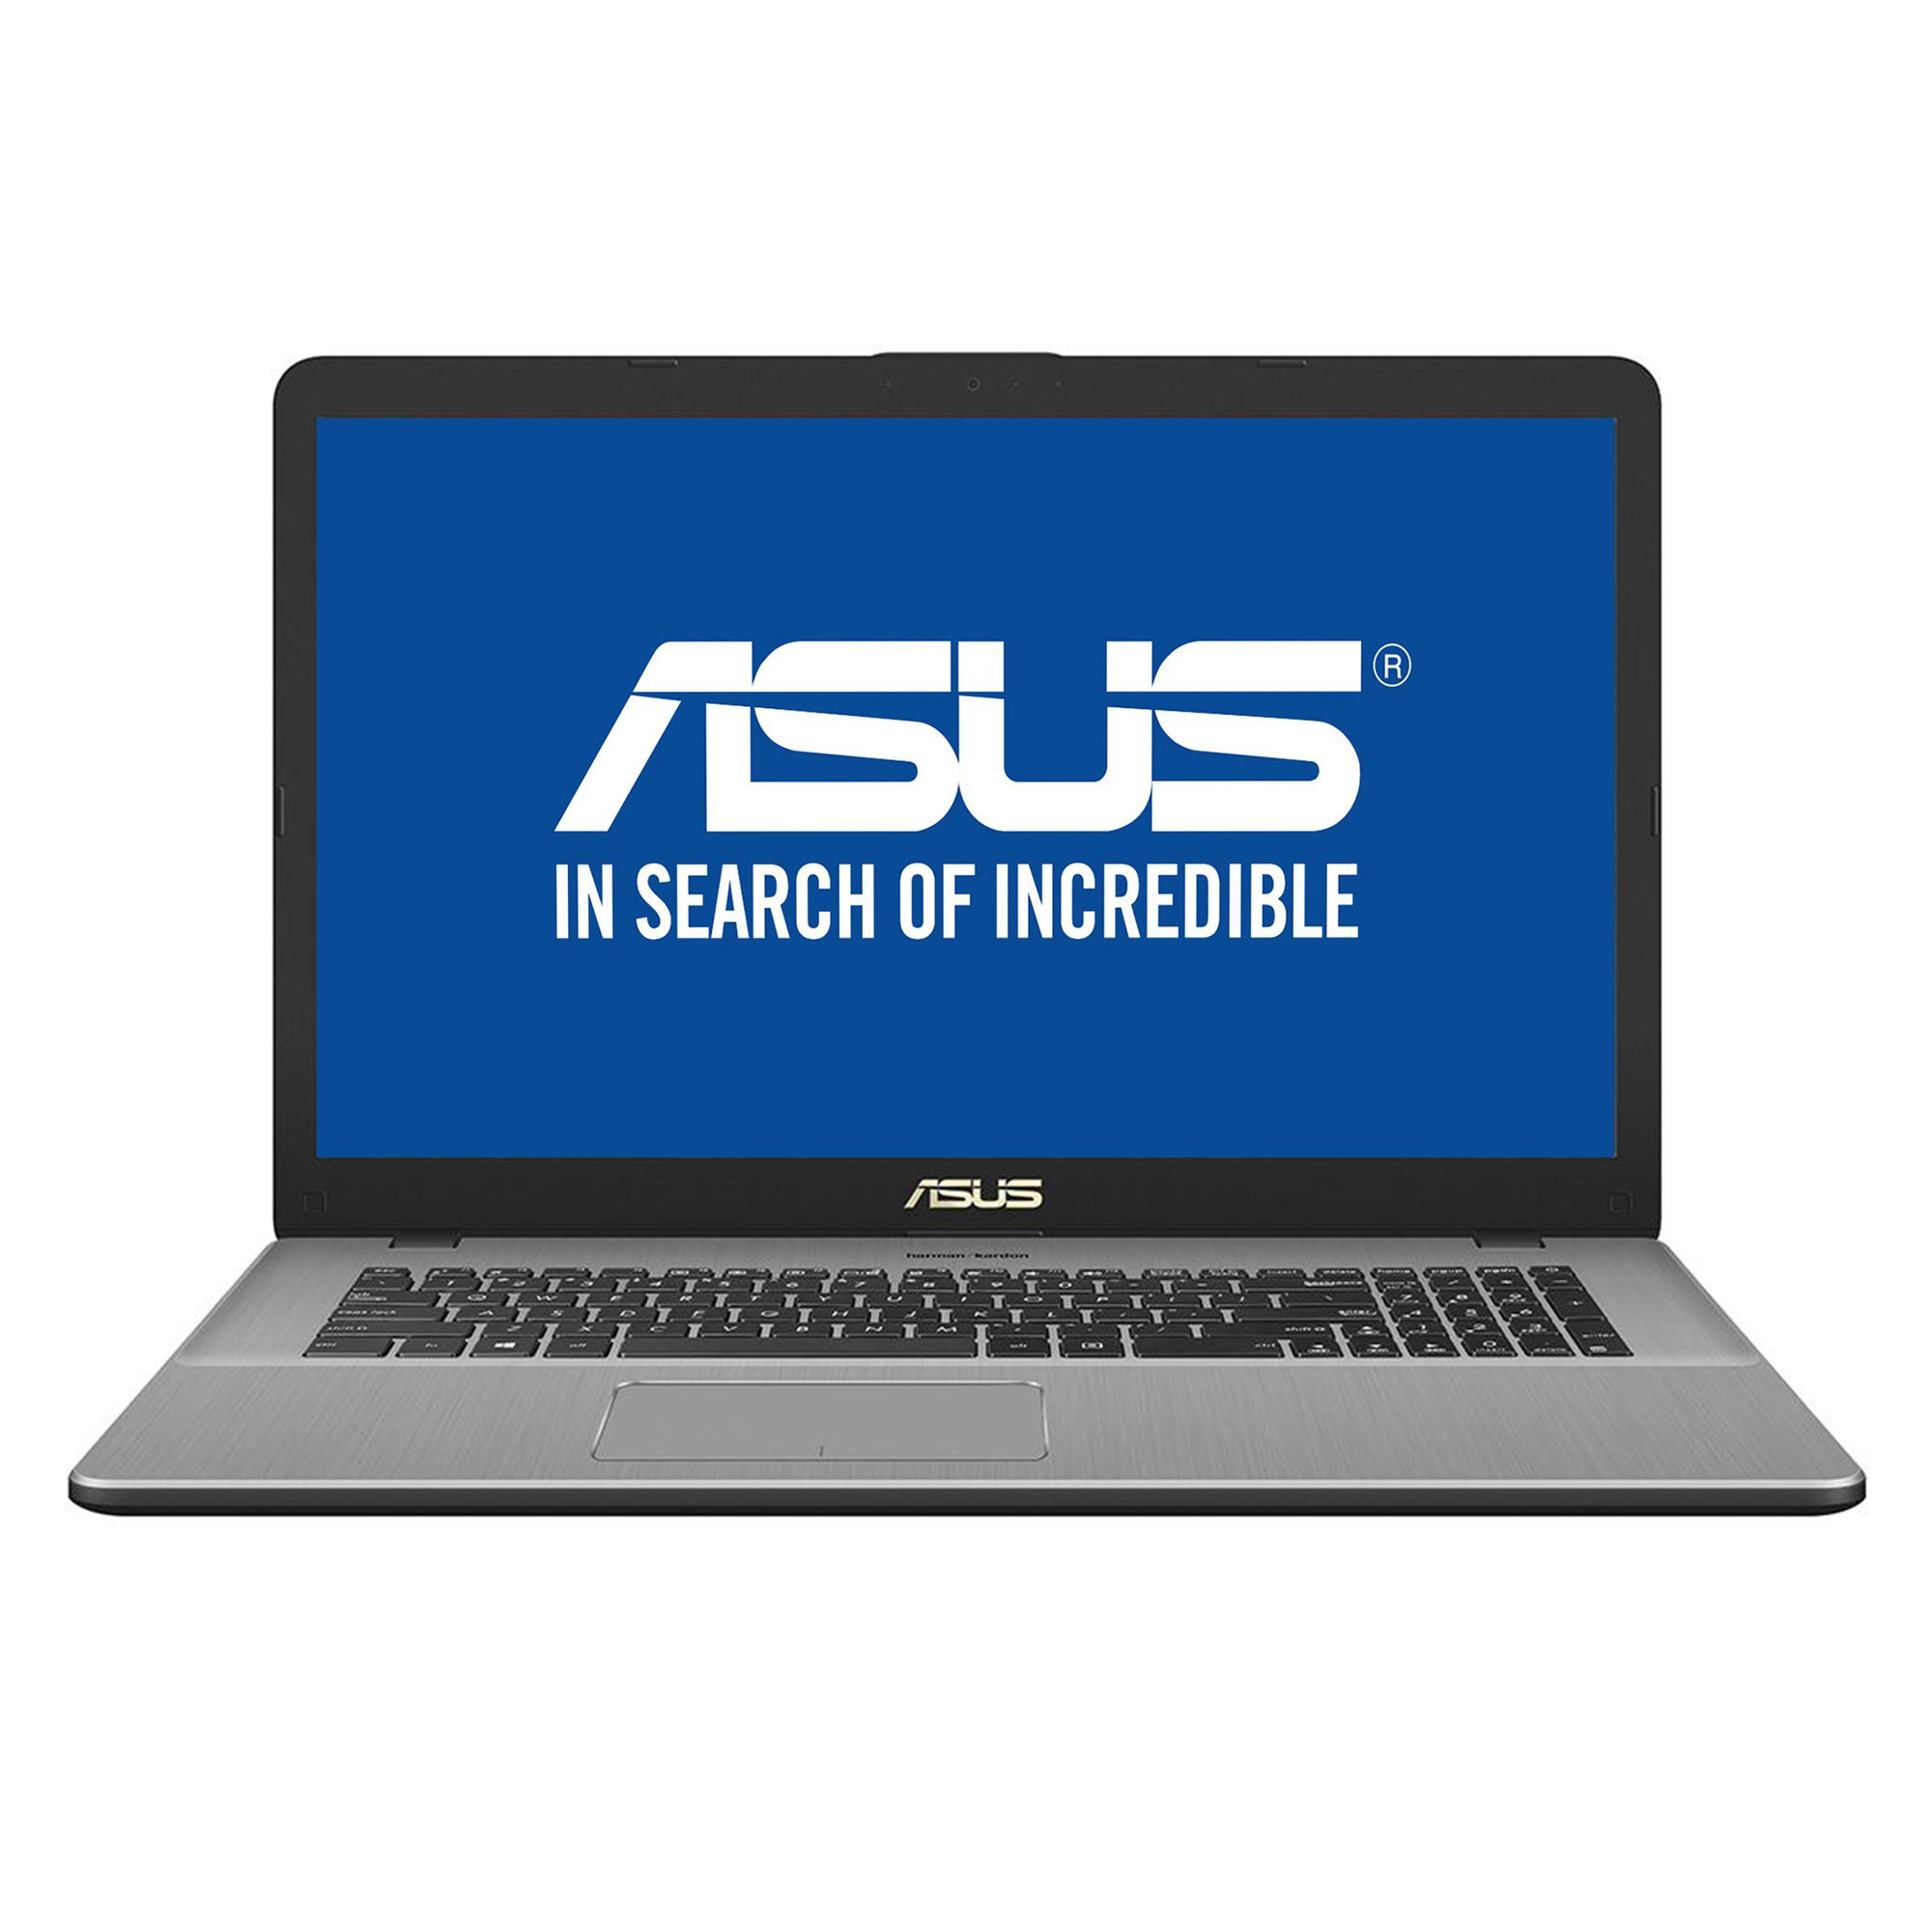 Notebook Asus VivoBook Pro N705UD 17.3 Full HD Intel Core i5-8250U GTX 1050-4GB RAM 8GB HDD 1TB + SSD 128GB Endless OS